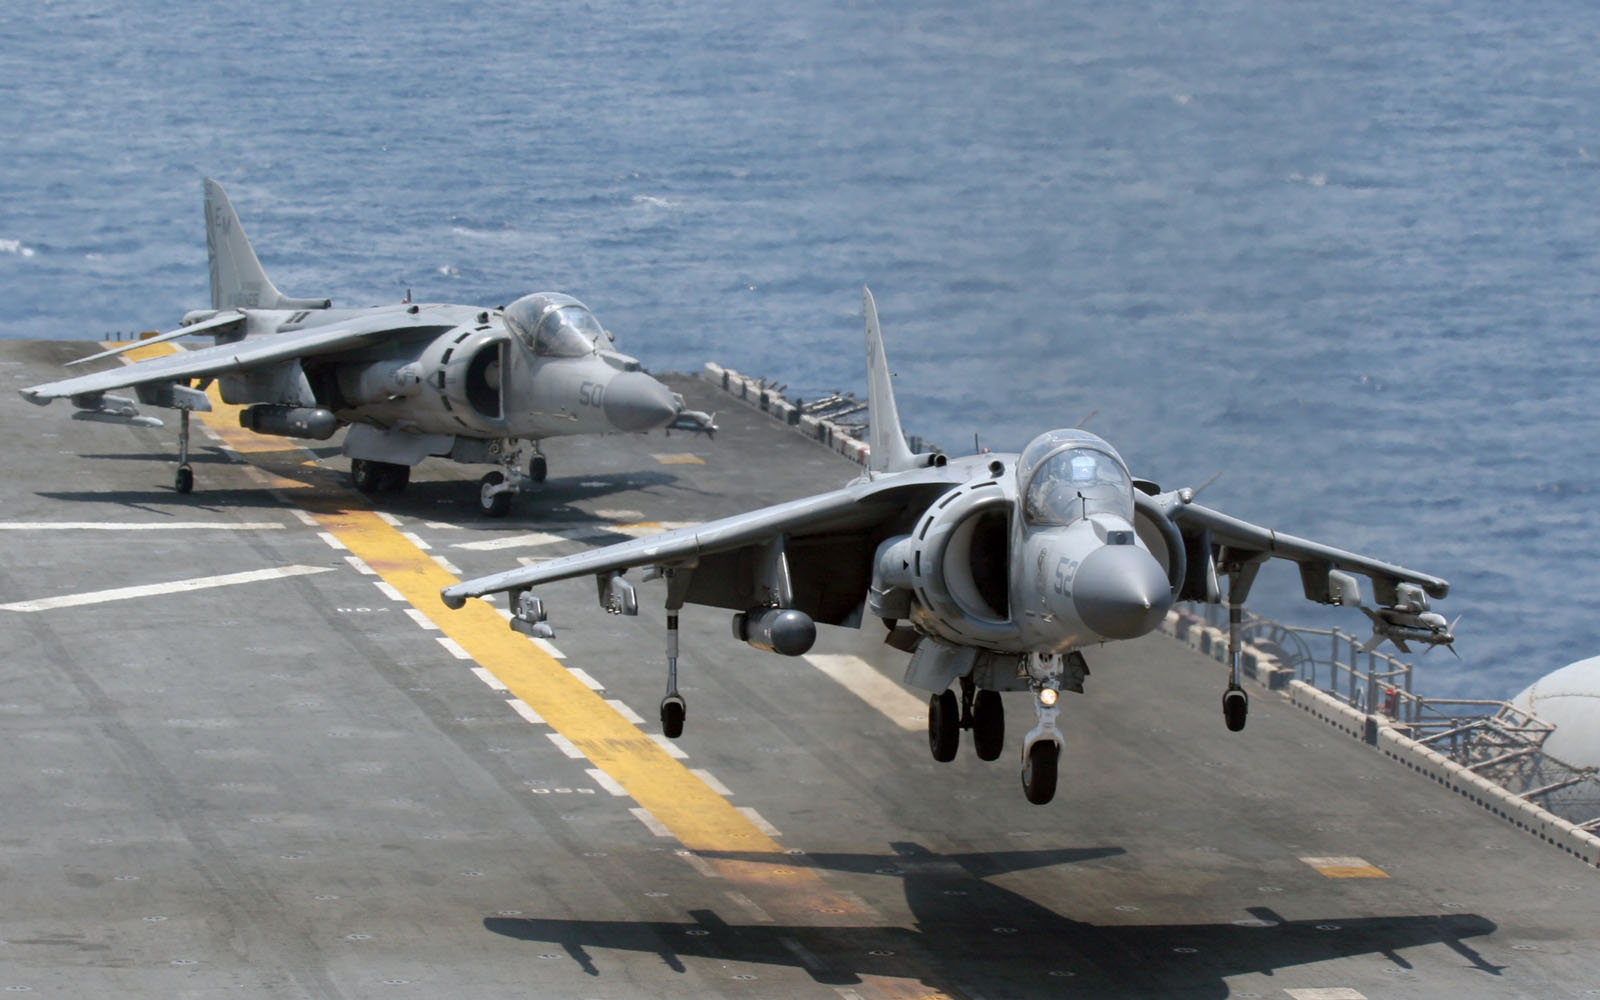 wallpapers: AV 8B Harrier II Aircraft